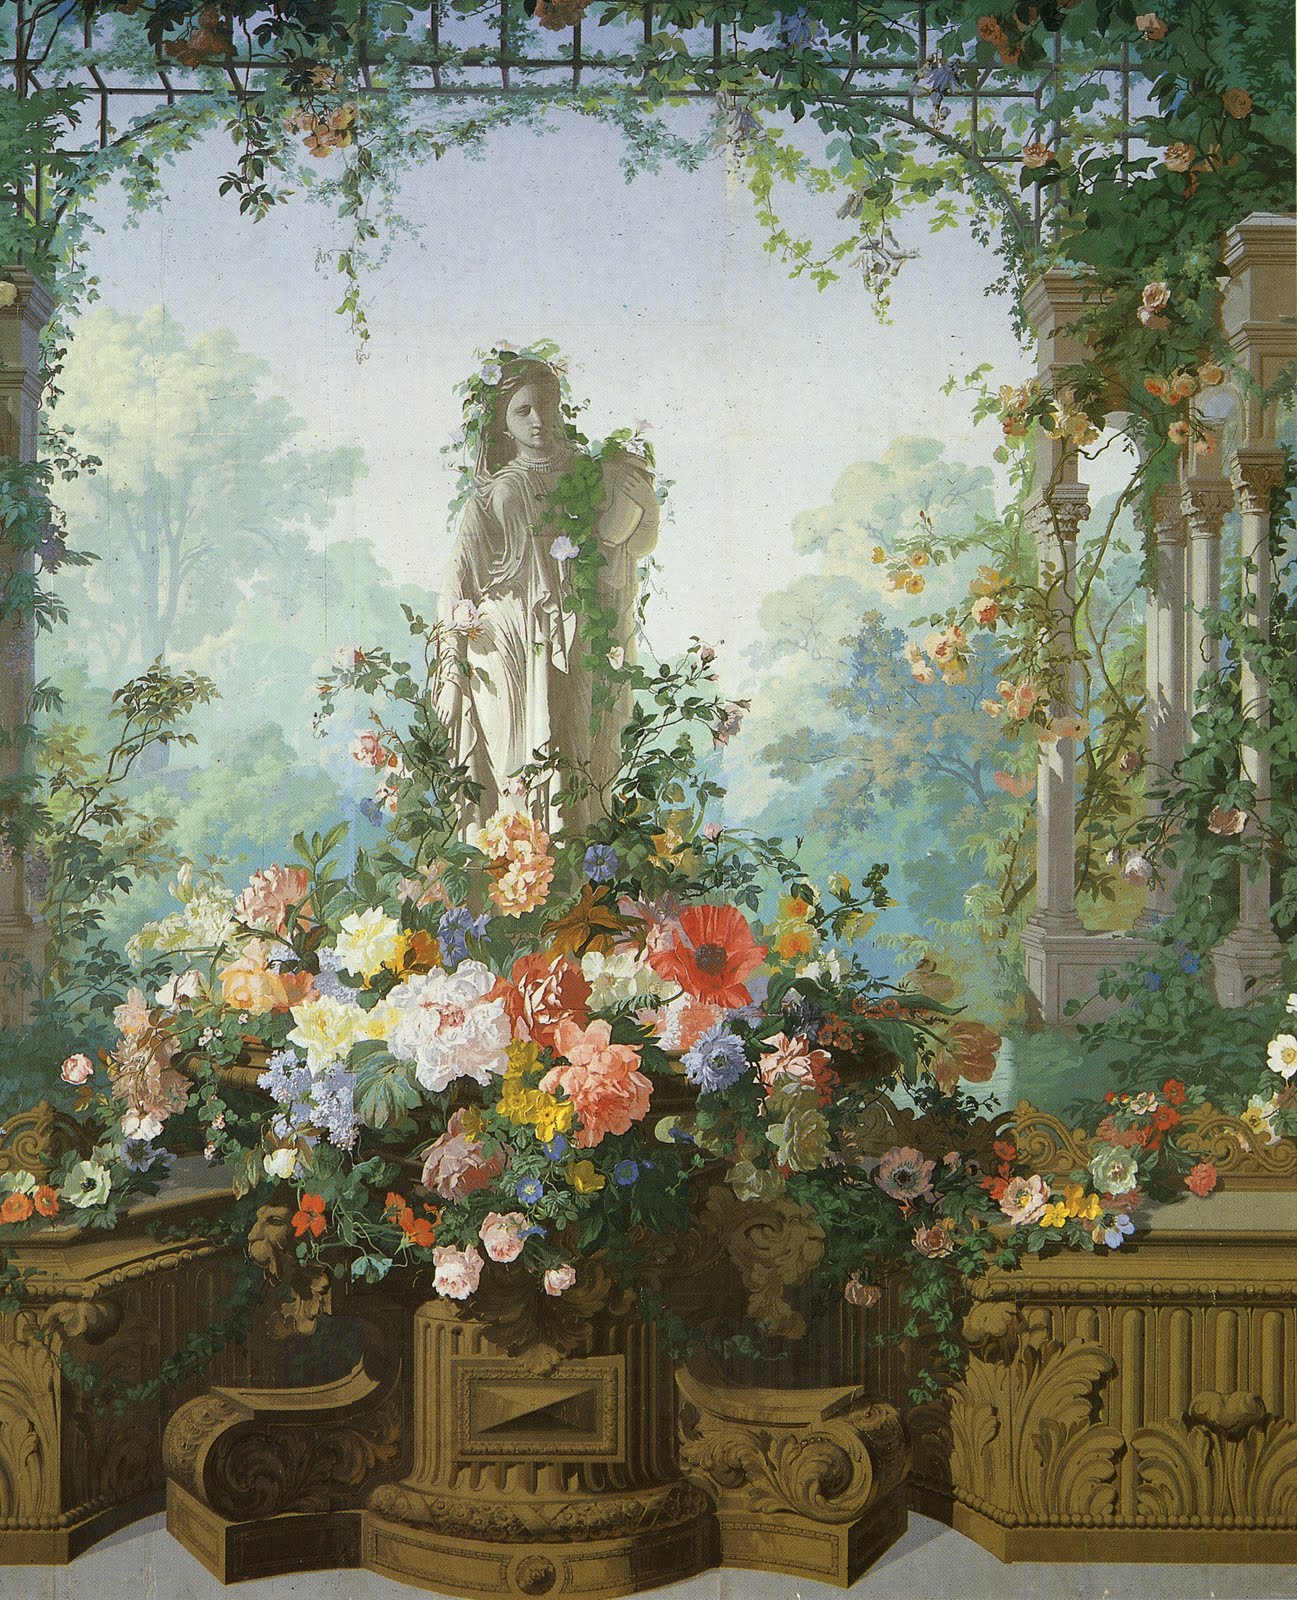 cityzenart: 19th Century French Scenic Wallpapers